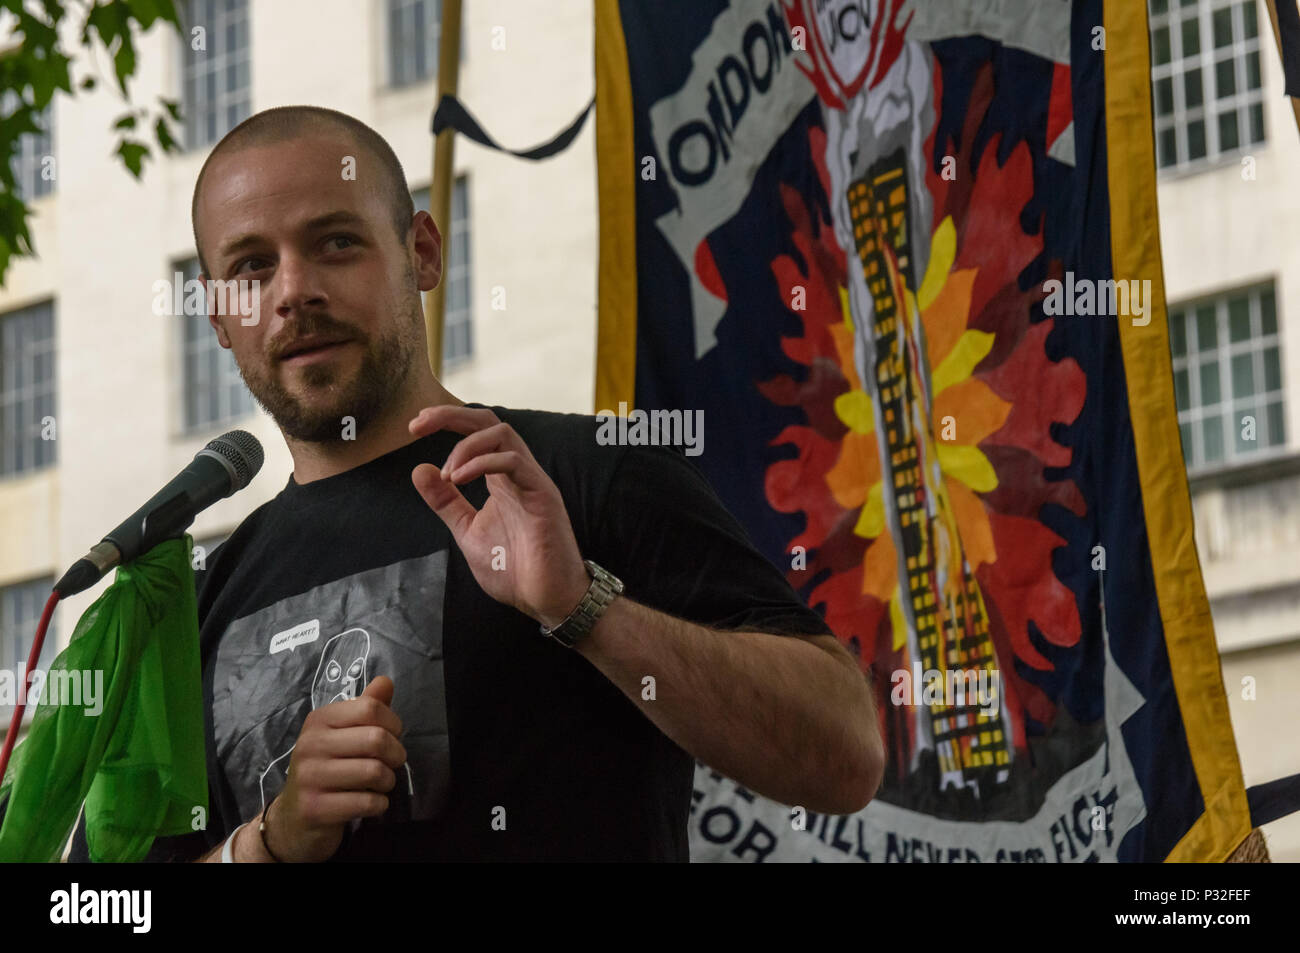 London, UK. 16th June 2018. Daniel Renwick co-director of the film about Grenfell, 'Failed by the state',  speaks at the protest at Downing St in solidarity with the 72 killed and the survivors of the Grenfell fire a year ago organised by Justice4Grenfell and the FBU (Fire Brigades Union.) After some speeches they marched to the Home Office for a brief protest before returning to Downing St for more speeches. Speakers complained of the many promises made by Theresa May which have been broken, despite her promise all survivors would be rehoused in 3 weeks, a year later 50% of survivors and disp - Stock Image